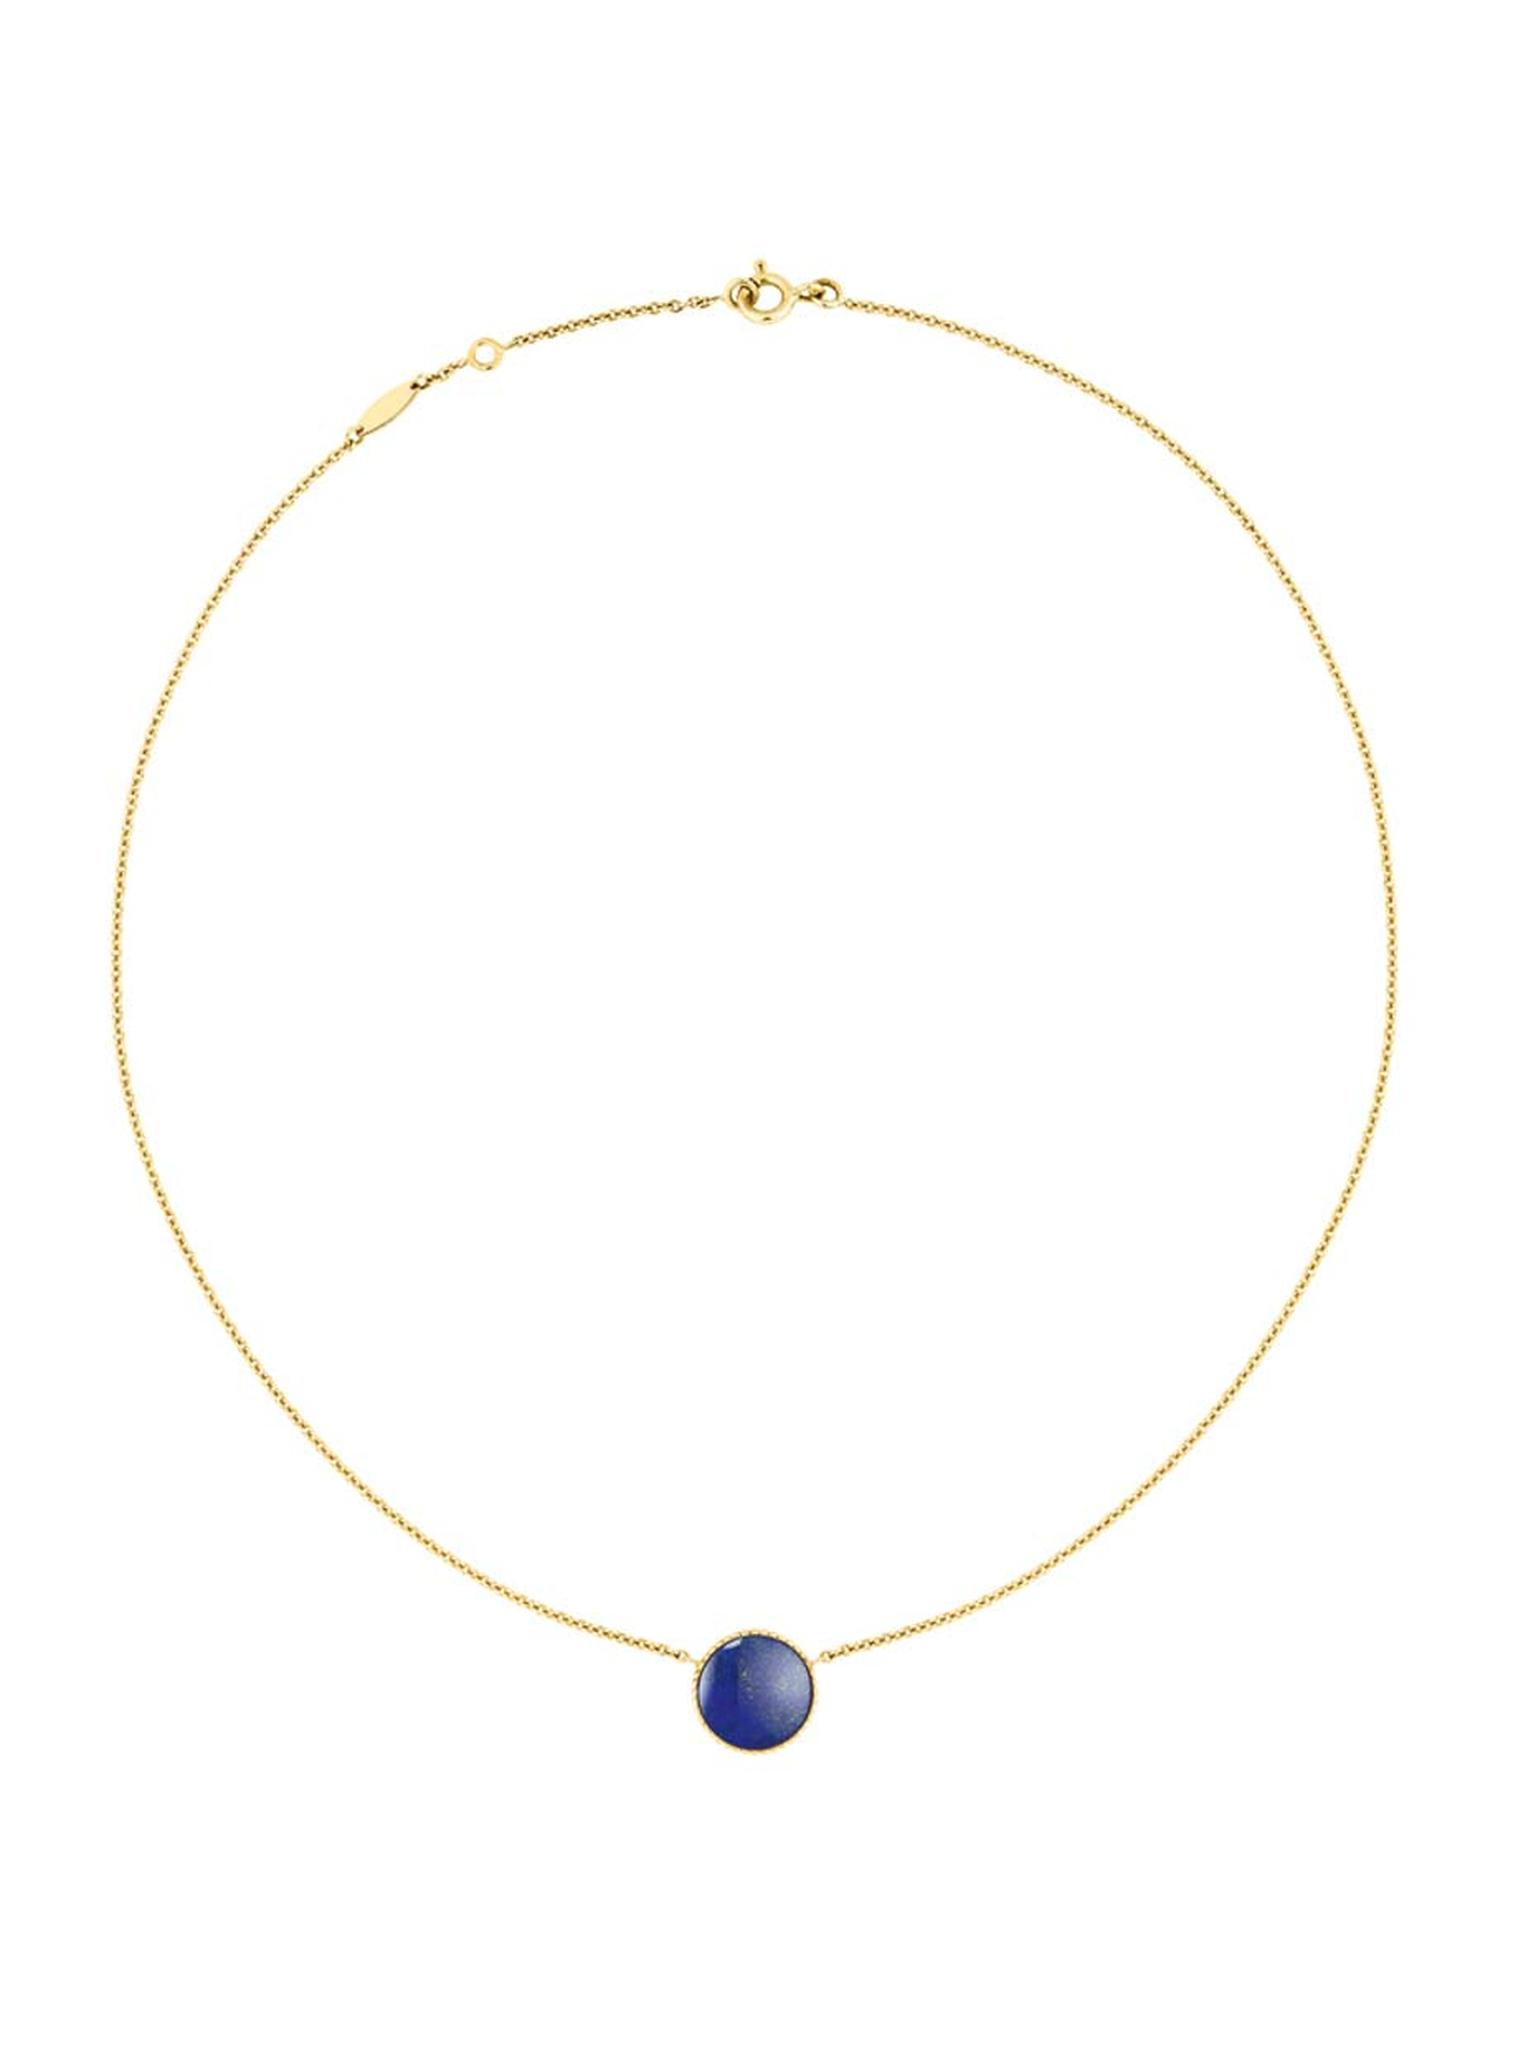 The gemstones featured in Dior's Rose Des Vent collection are said to make reference to ship rigging and the ocean, and this lapis lazuli stone perfectly reflects the colour of the ocean at night.